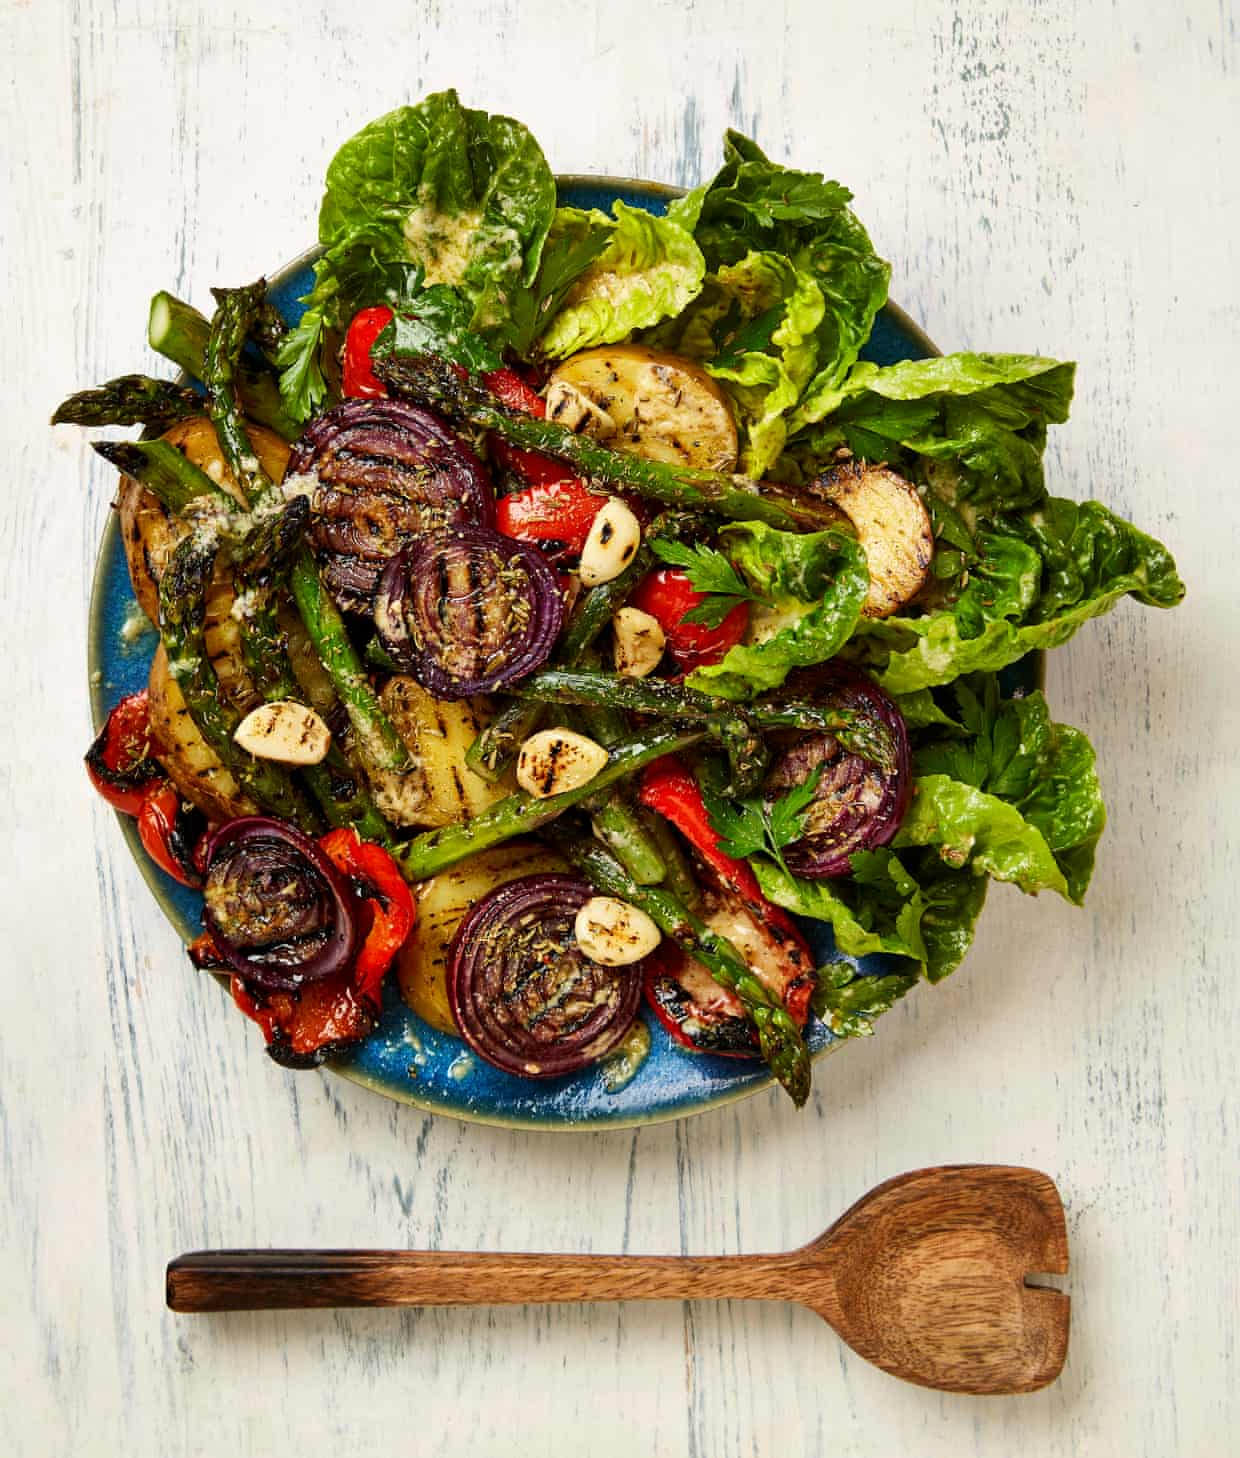 Yotam Ottolenghi's grilled vegetables with mustard and parmesan dressing.